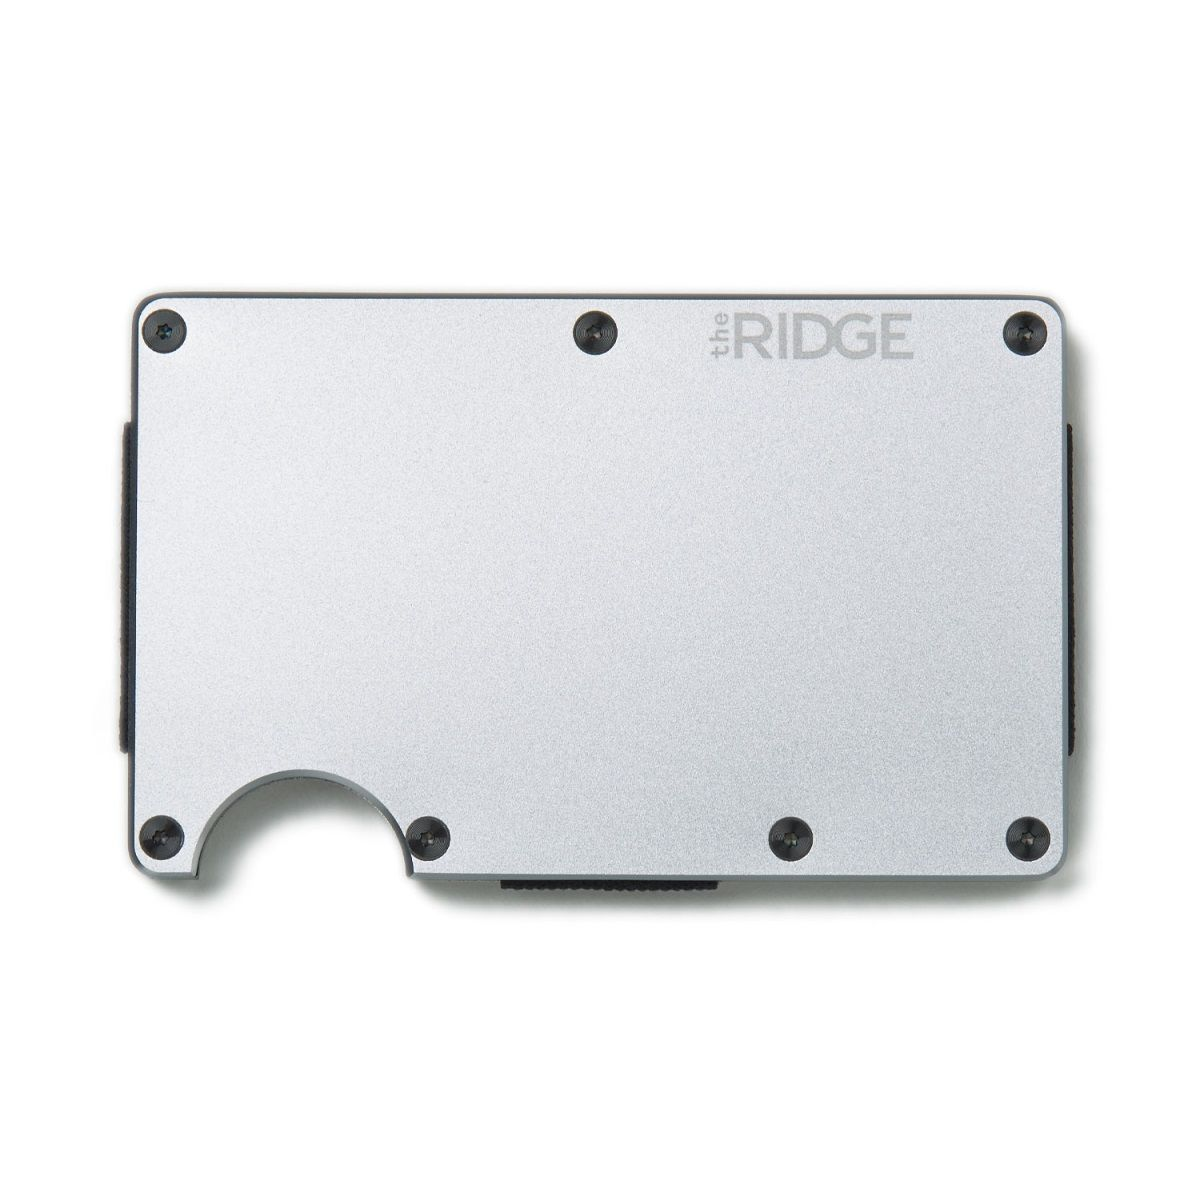 THE RIDGE Aluminum Wallet With Cash Strap - Silver